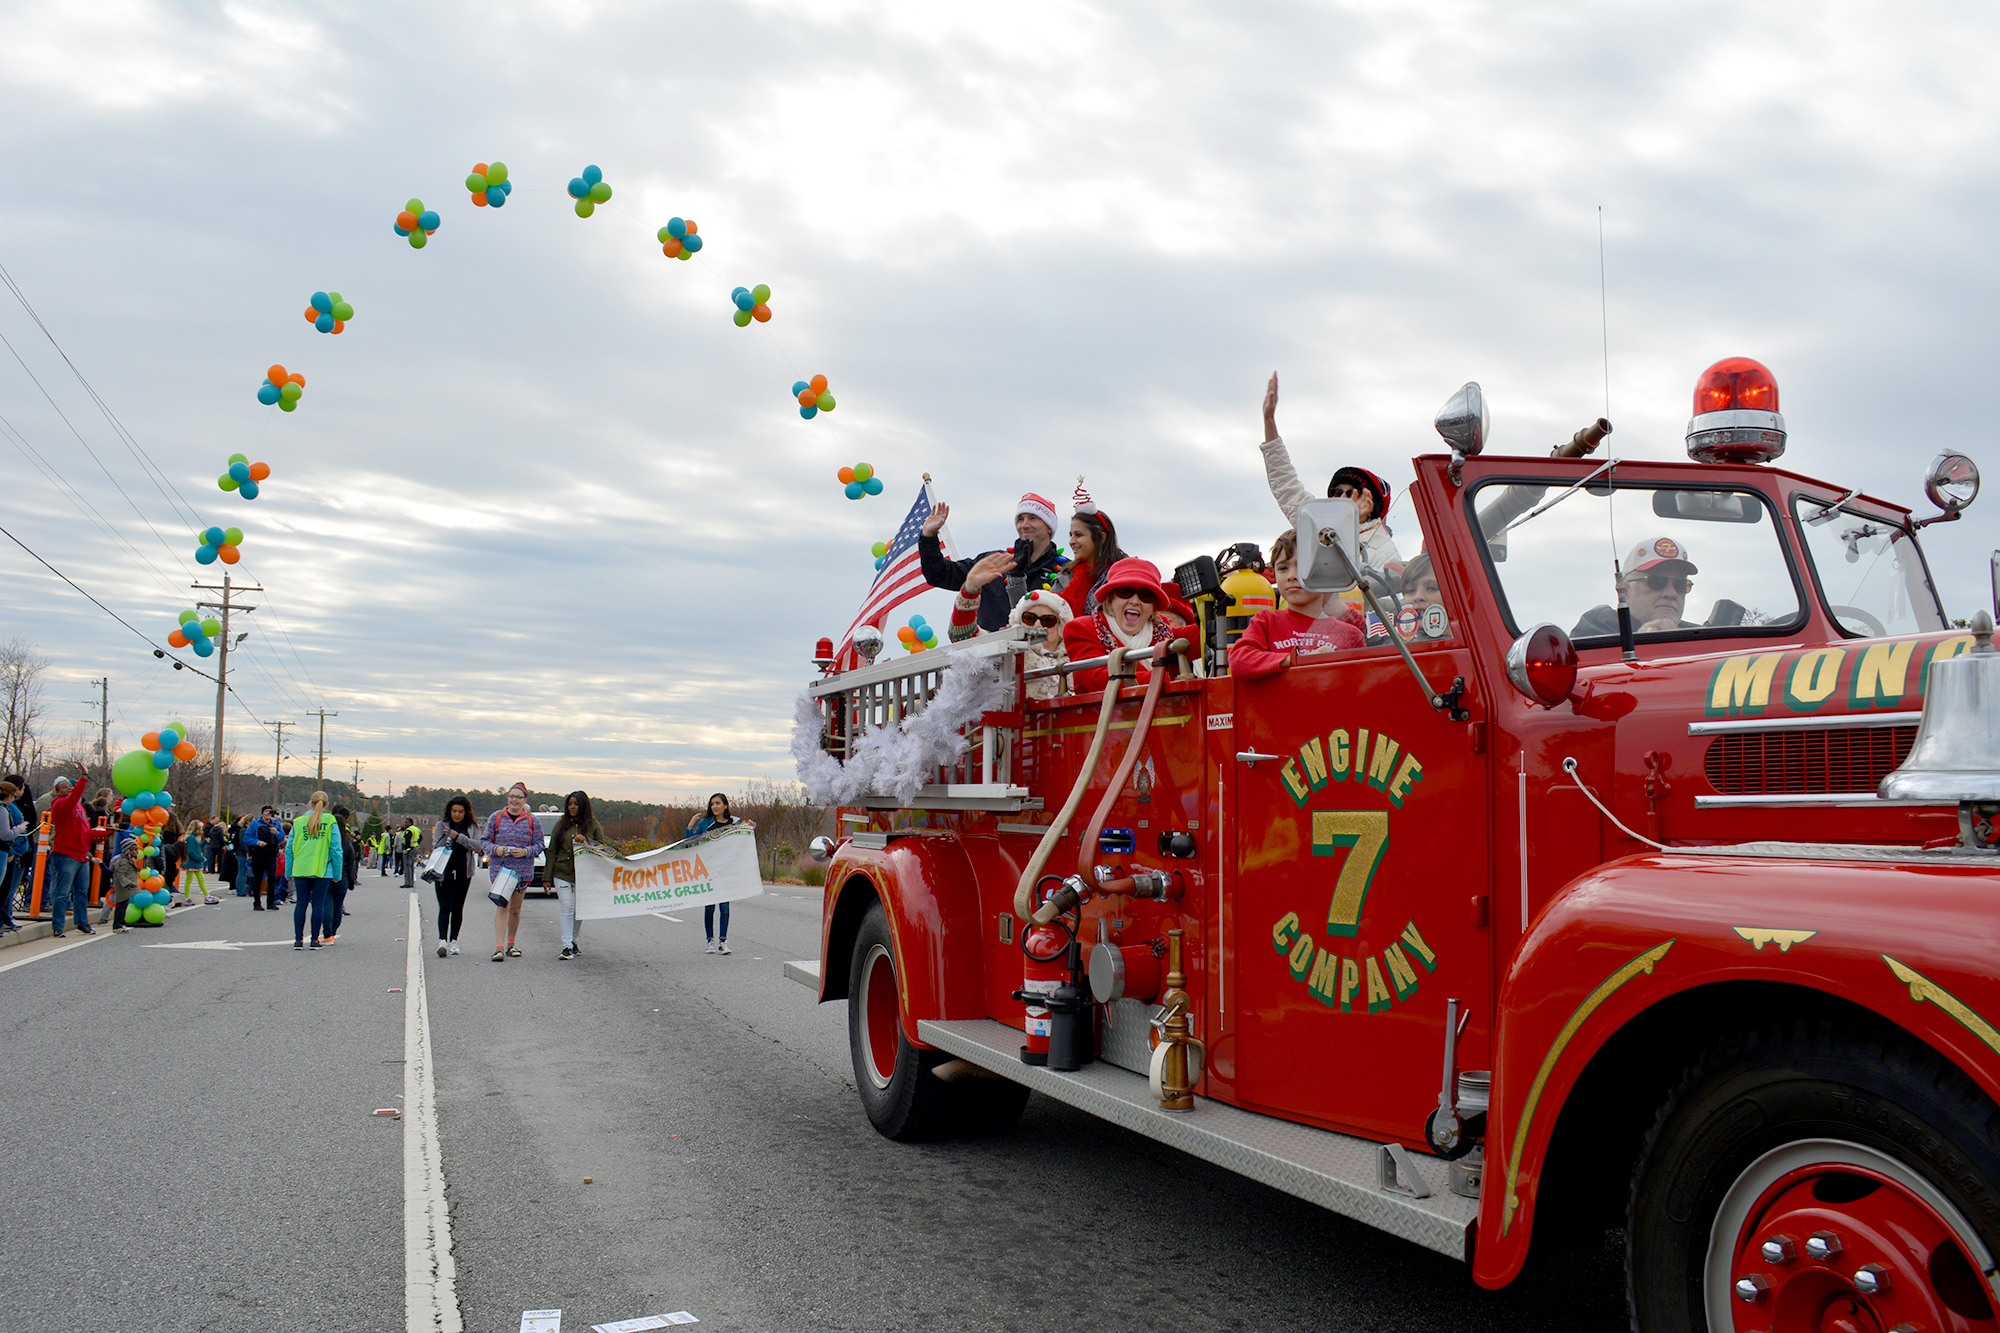 Johns Creek Founders Day Parade set for Dec. 2, traffic plan alert